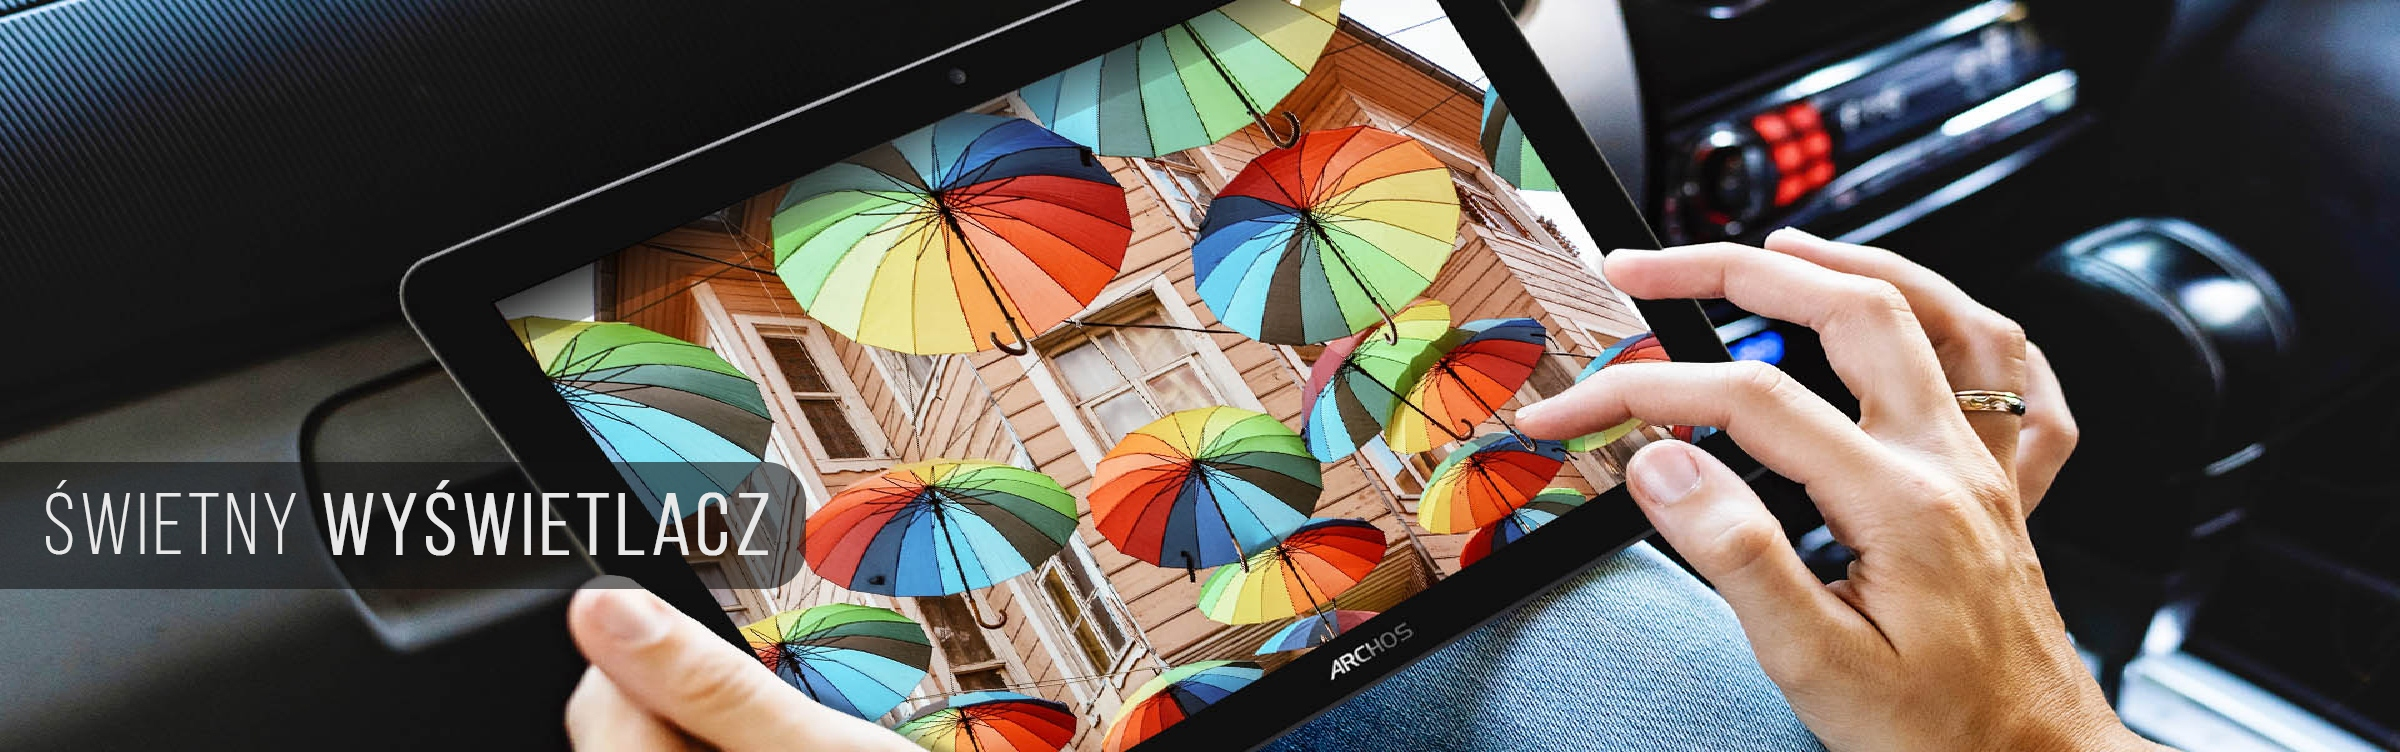 TABLET ARCHOS CORE 101 3G ULTRA 10,1'' 2/32GB GSM System operacyjny Android